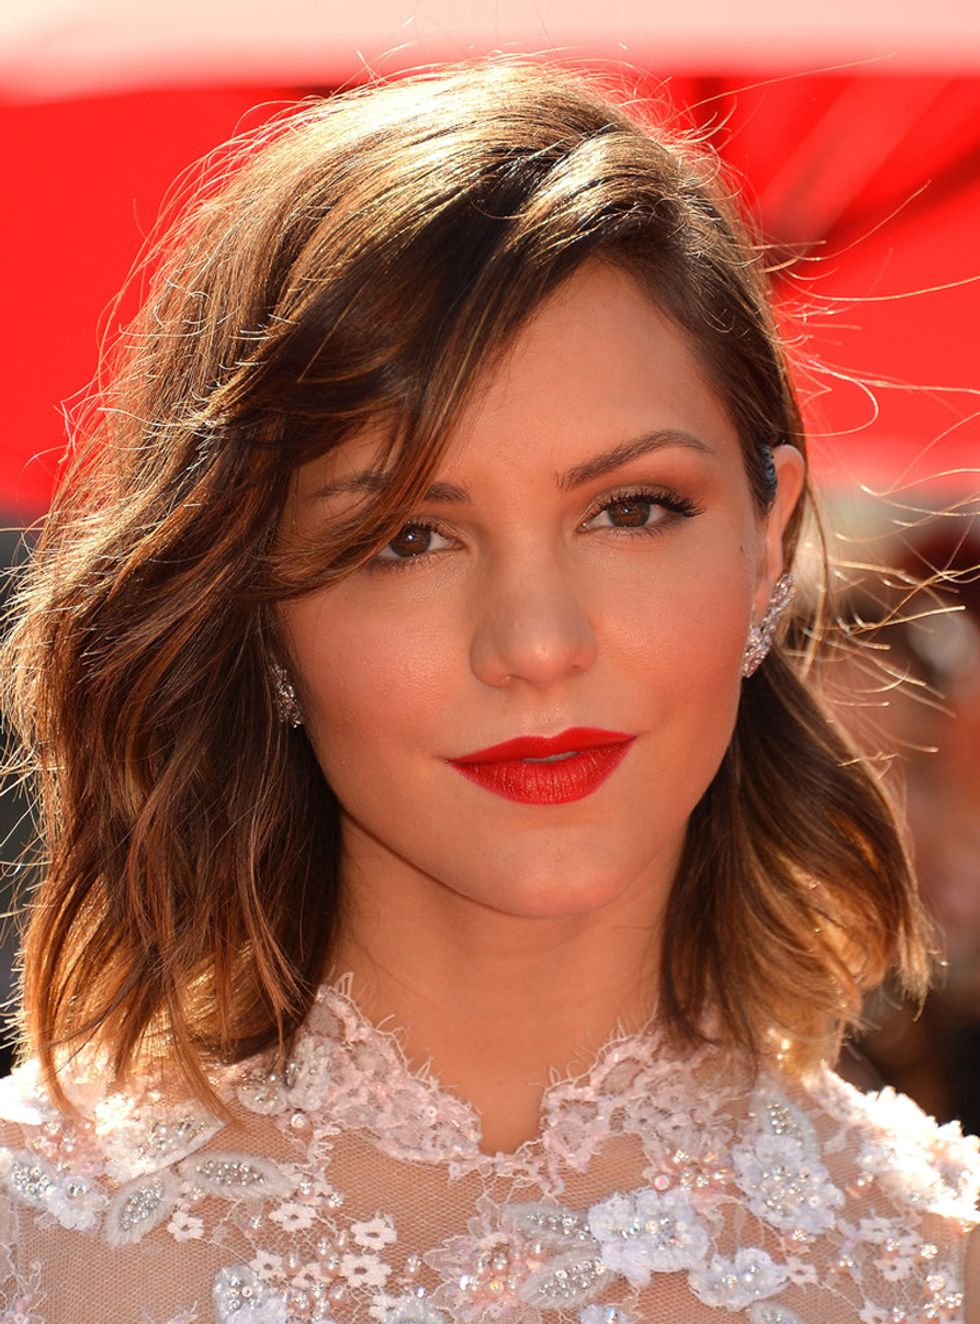 The Most Desired Lip Shapes, According to a Plastic